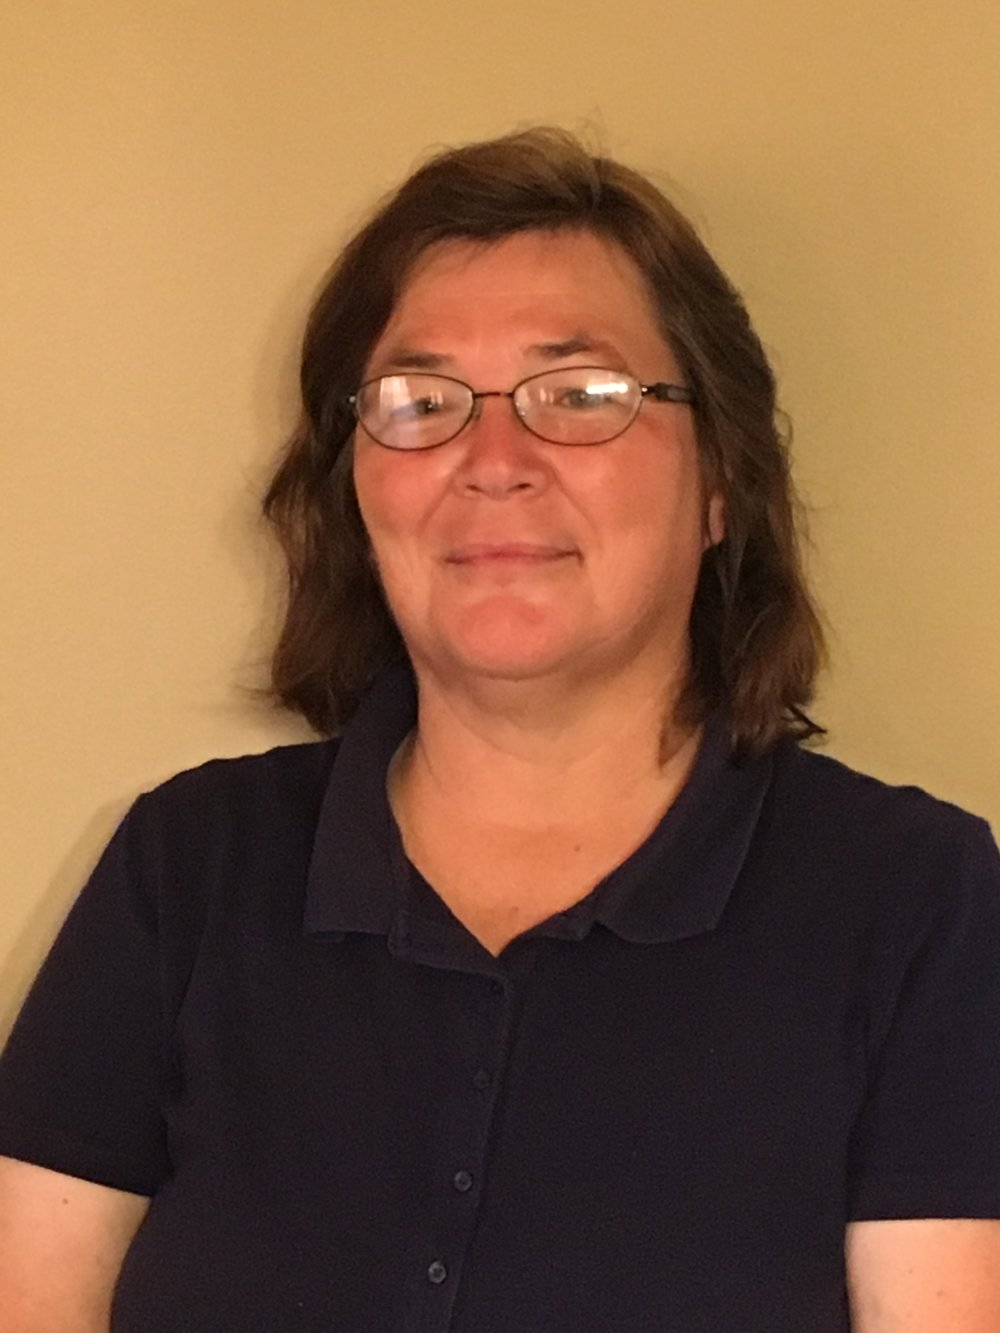 Sheryl Lyles, Houseparent /Social Worker - Sheryl graduated from JSU with a degree in Social Work.  She has worked for Eagle Rock for several years and enjoys planning exciting activities for the boys.  Sheryl is a great asset to the organization.  We love her dedication and passion to always